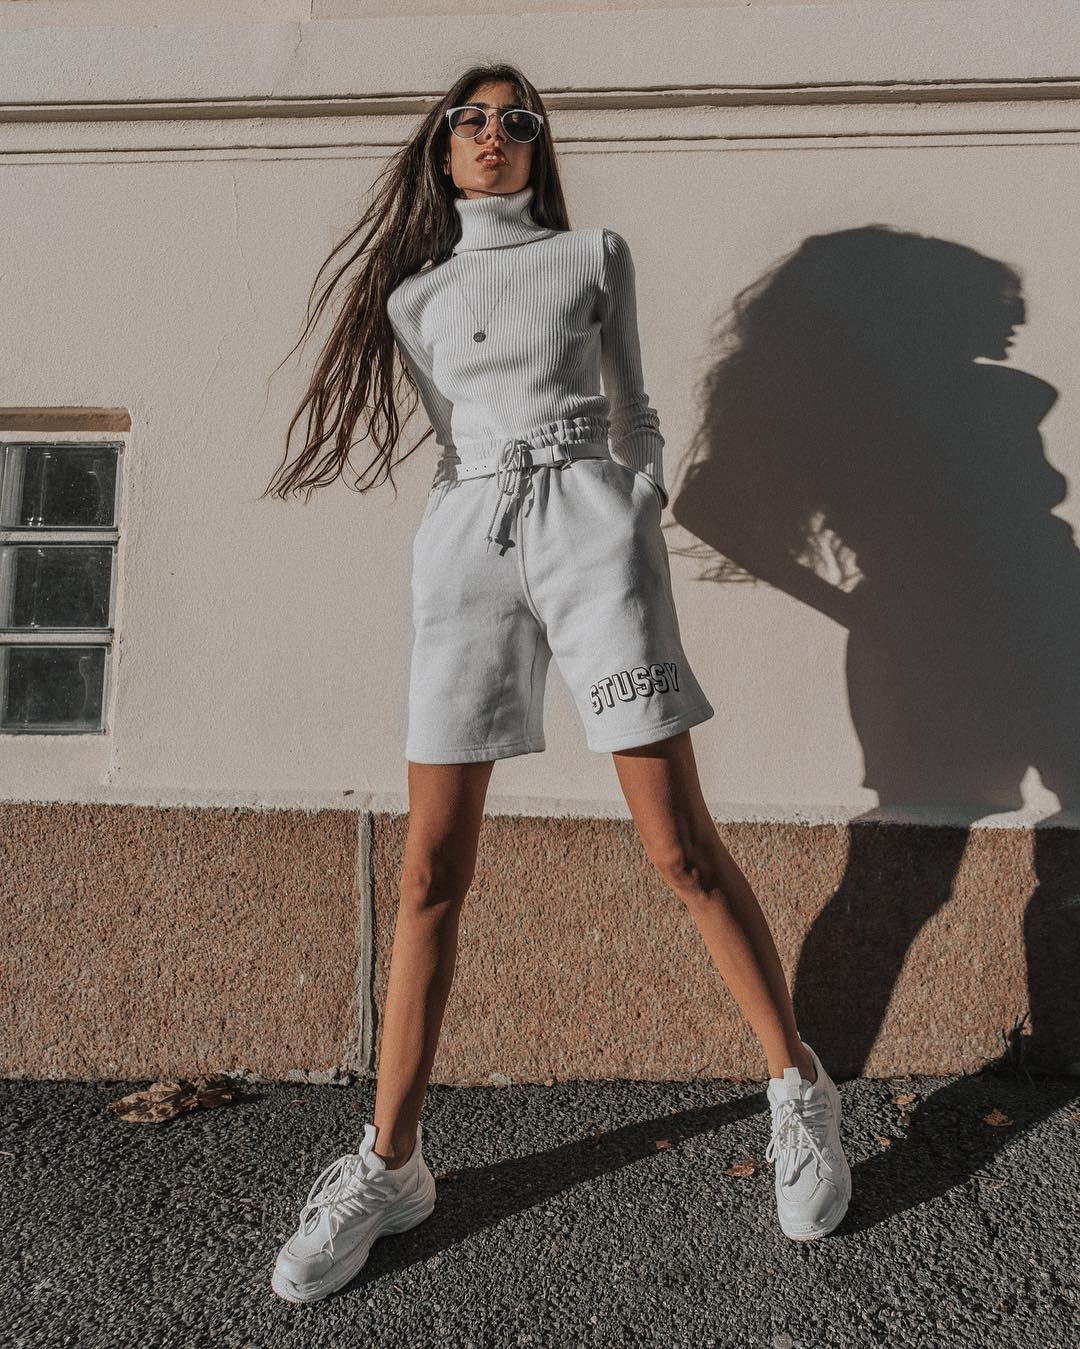 Turtlenecks, shorts, sneakers: a monochrome look for spring 2021